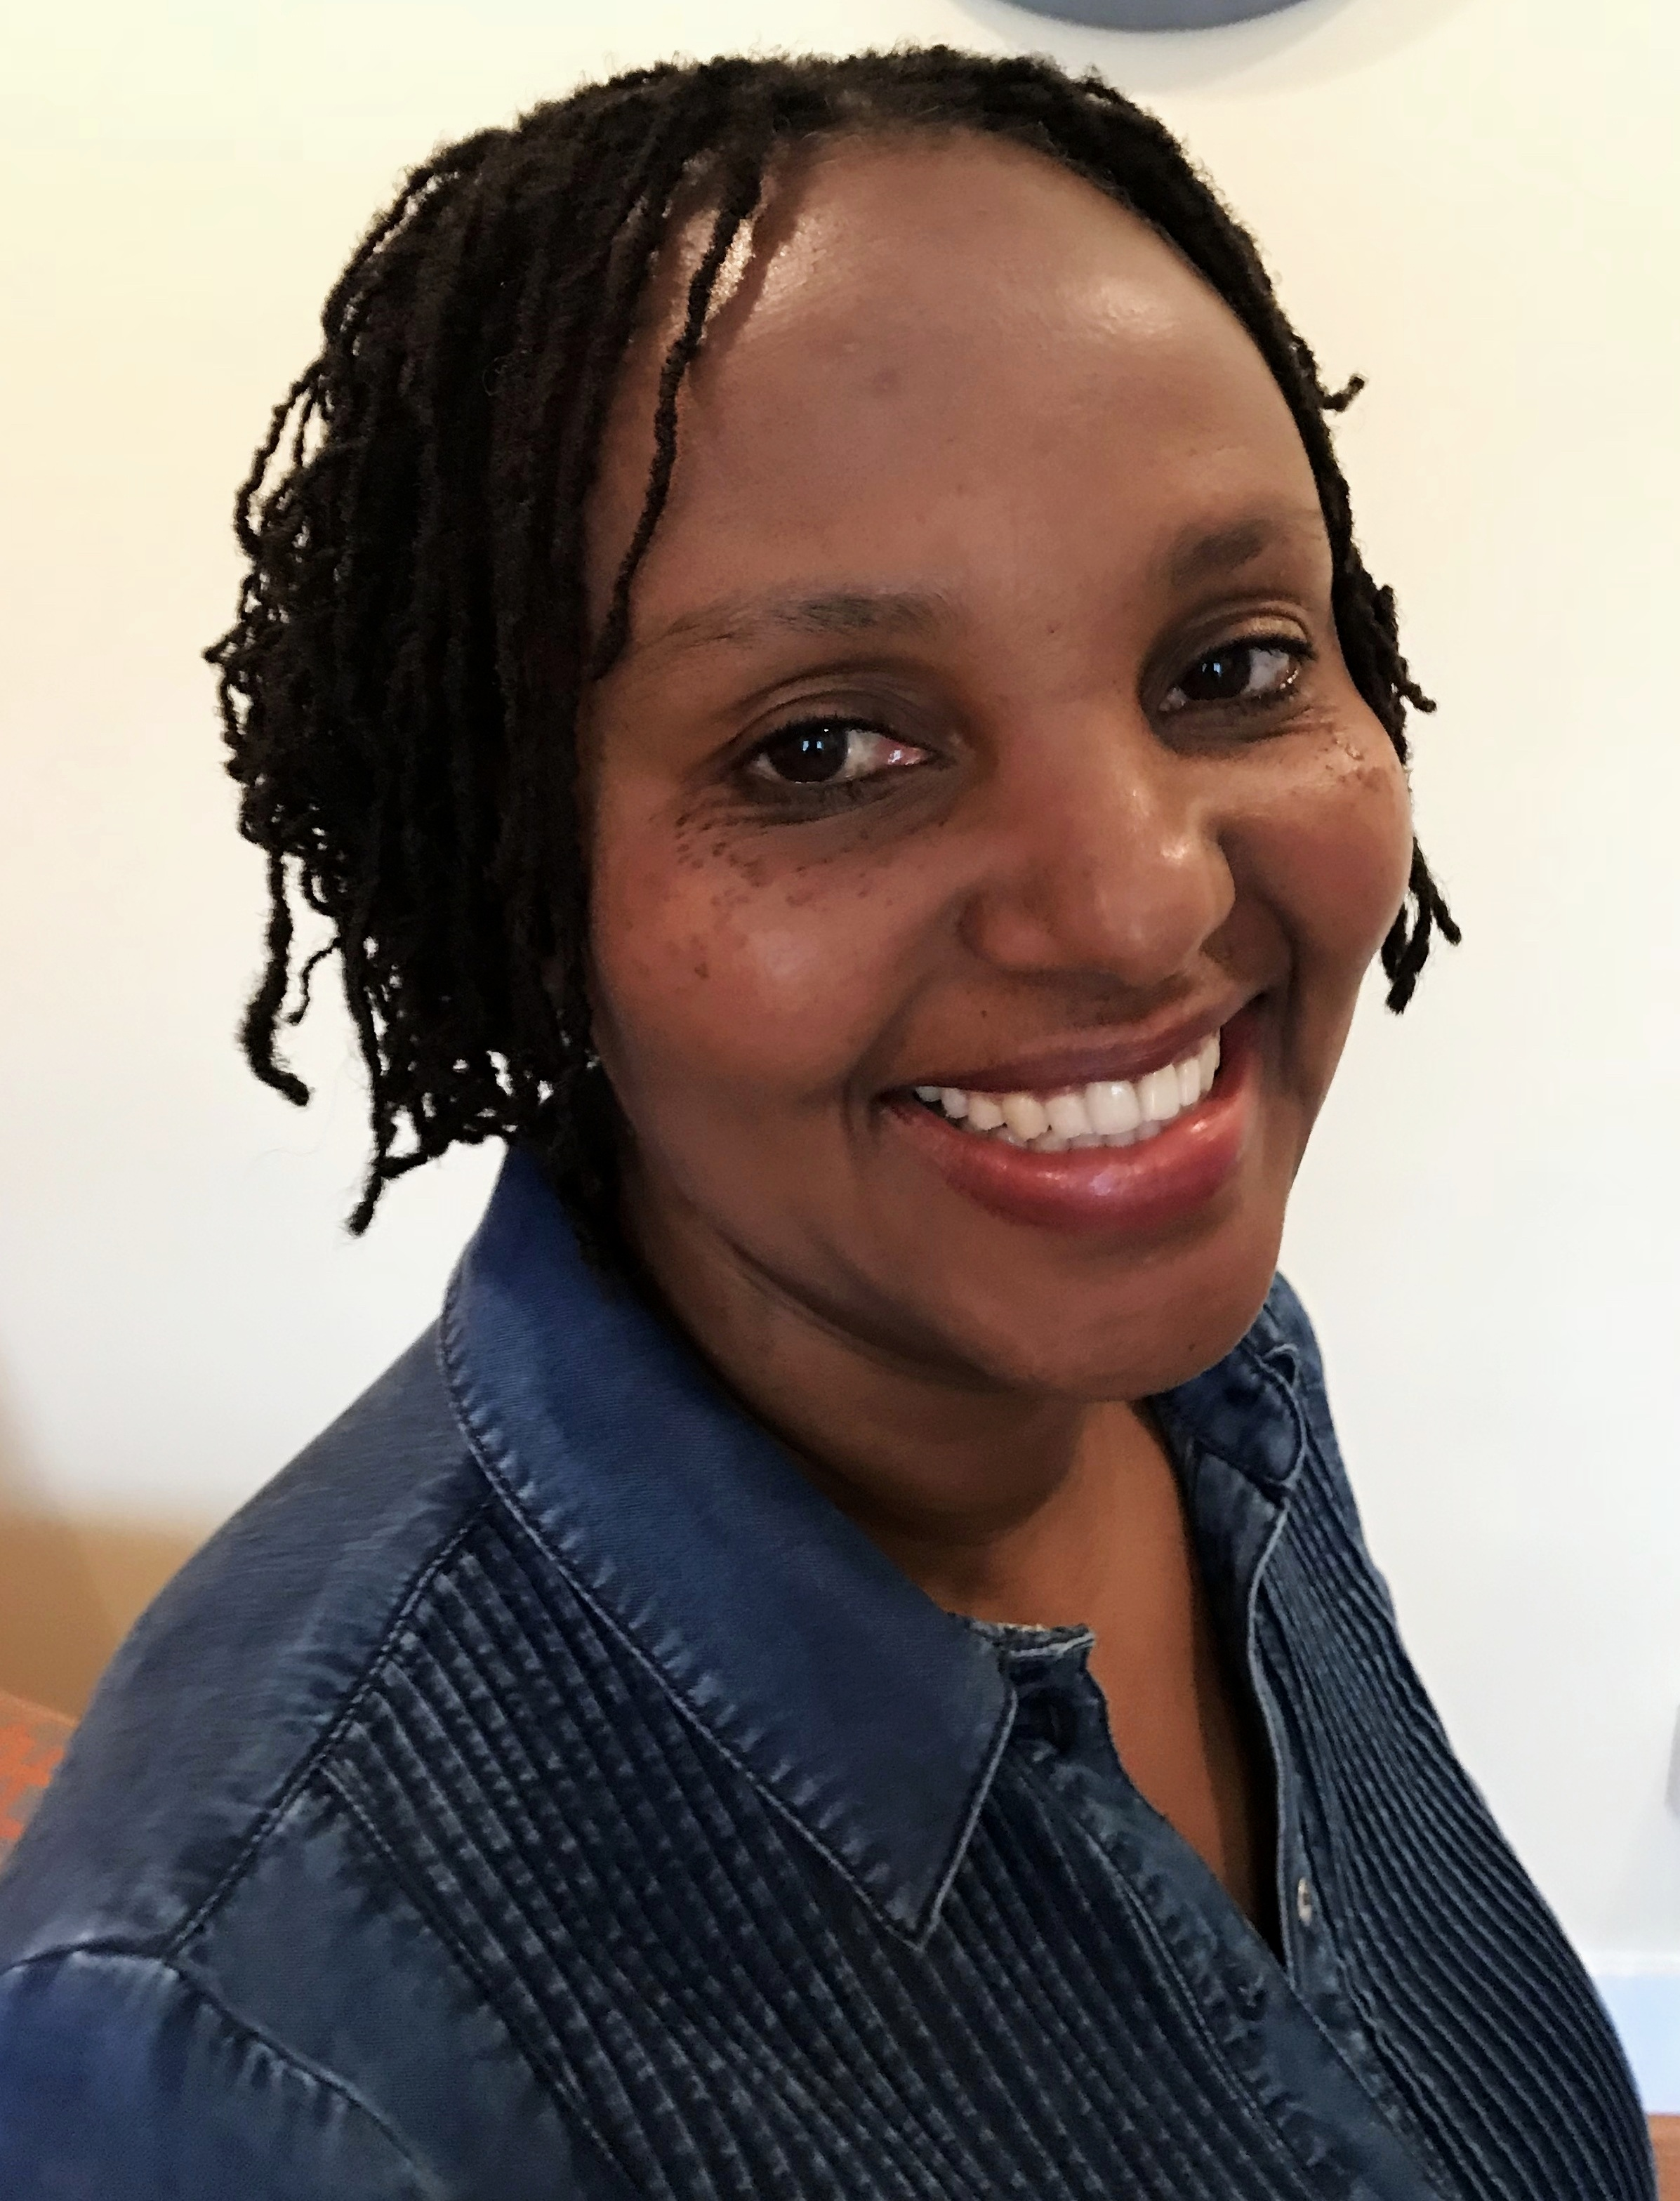 Peninnah Mutungi - Executive DirectorPenninnah is a medical doctor practicing here in St. Louis. She graduated from the University of Nairobi, Medical School.Her goal is to ensure children spend more time studying, rather than fetching water. Peninnah has been instrumental in coordinating Rehema's efforts to drill a borehole (well) in Mulumini Secondary School located in semi-arid part of Makueni, Kenya.Check out our